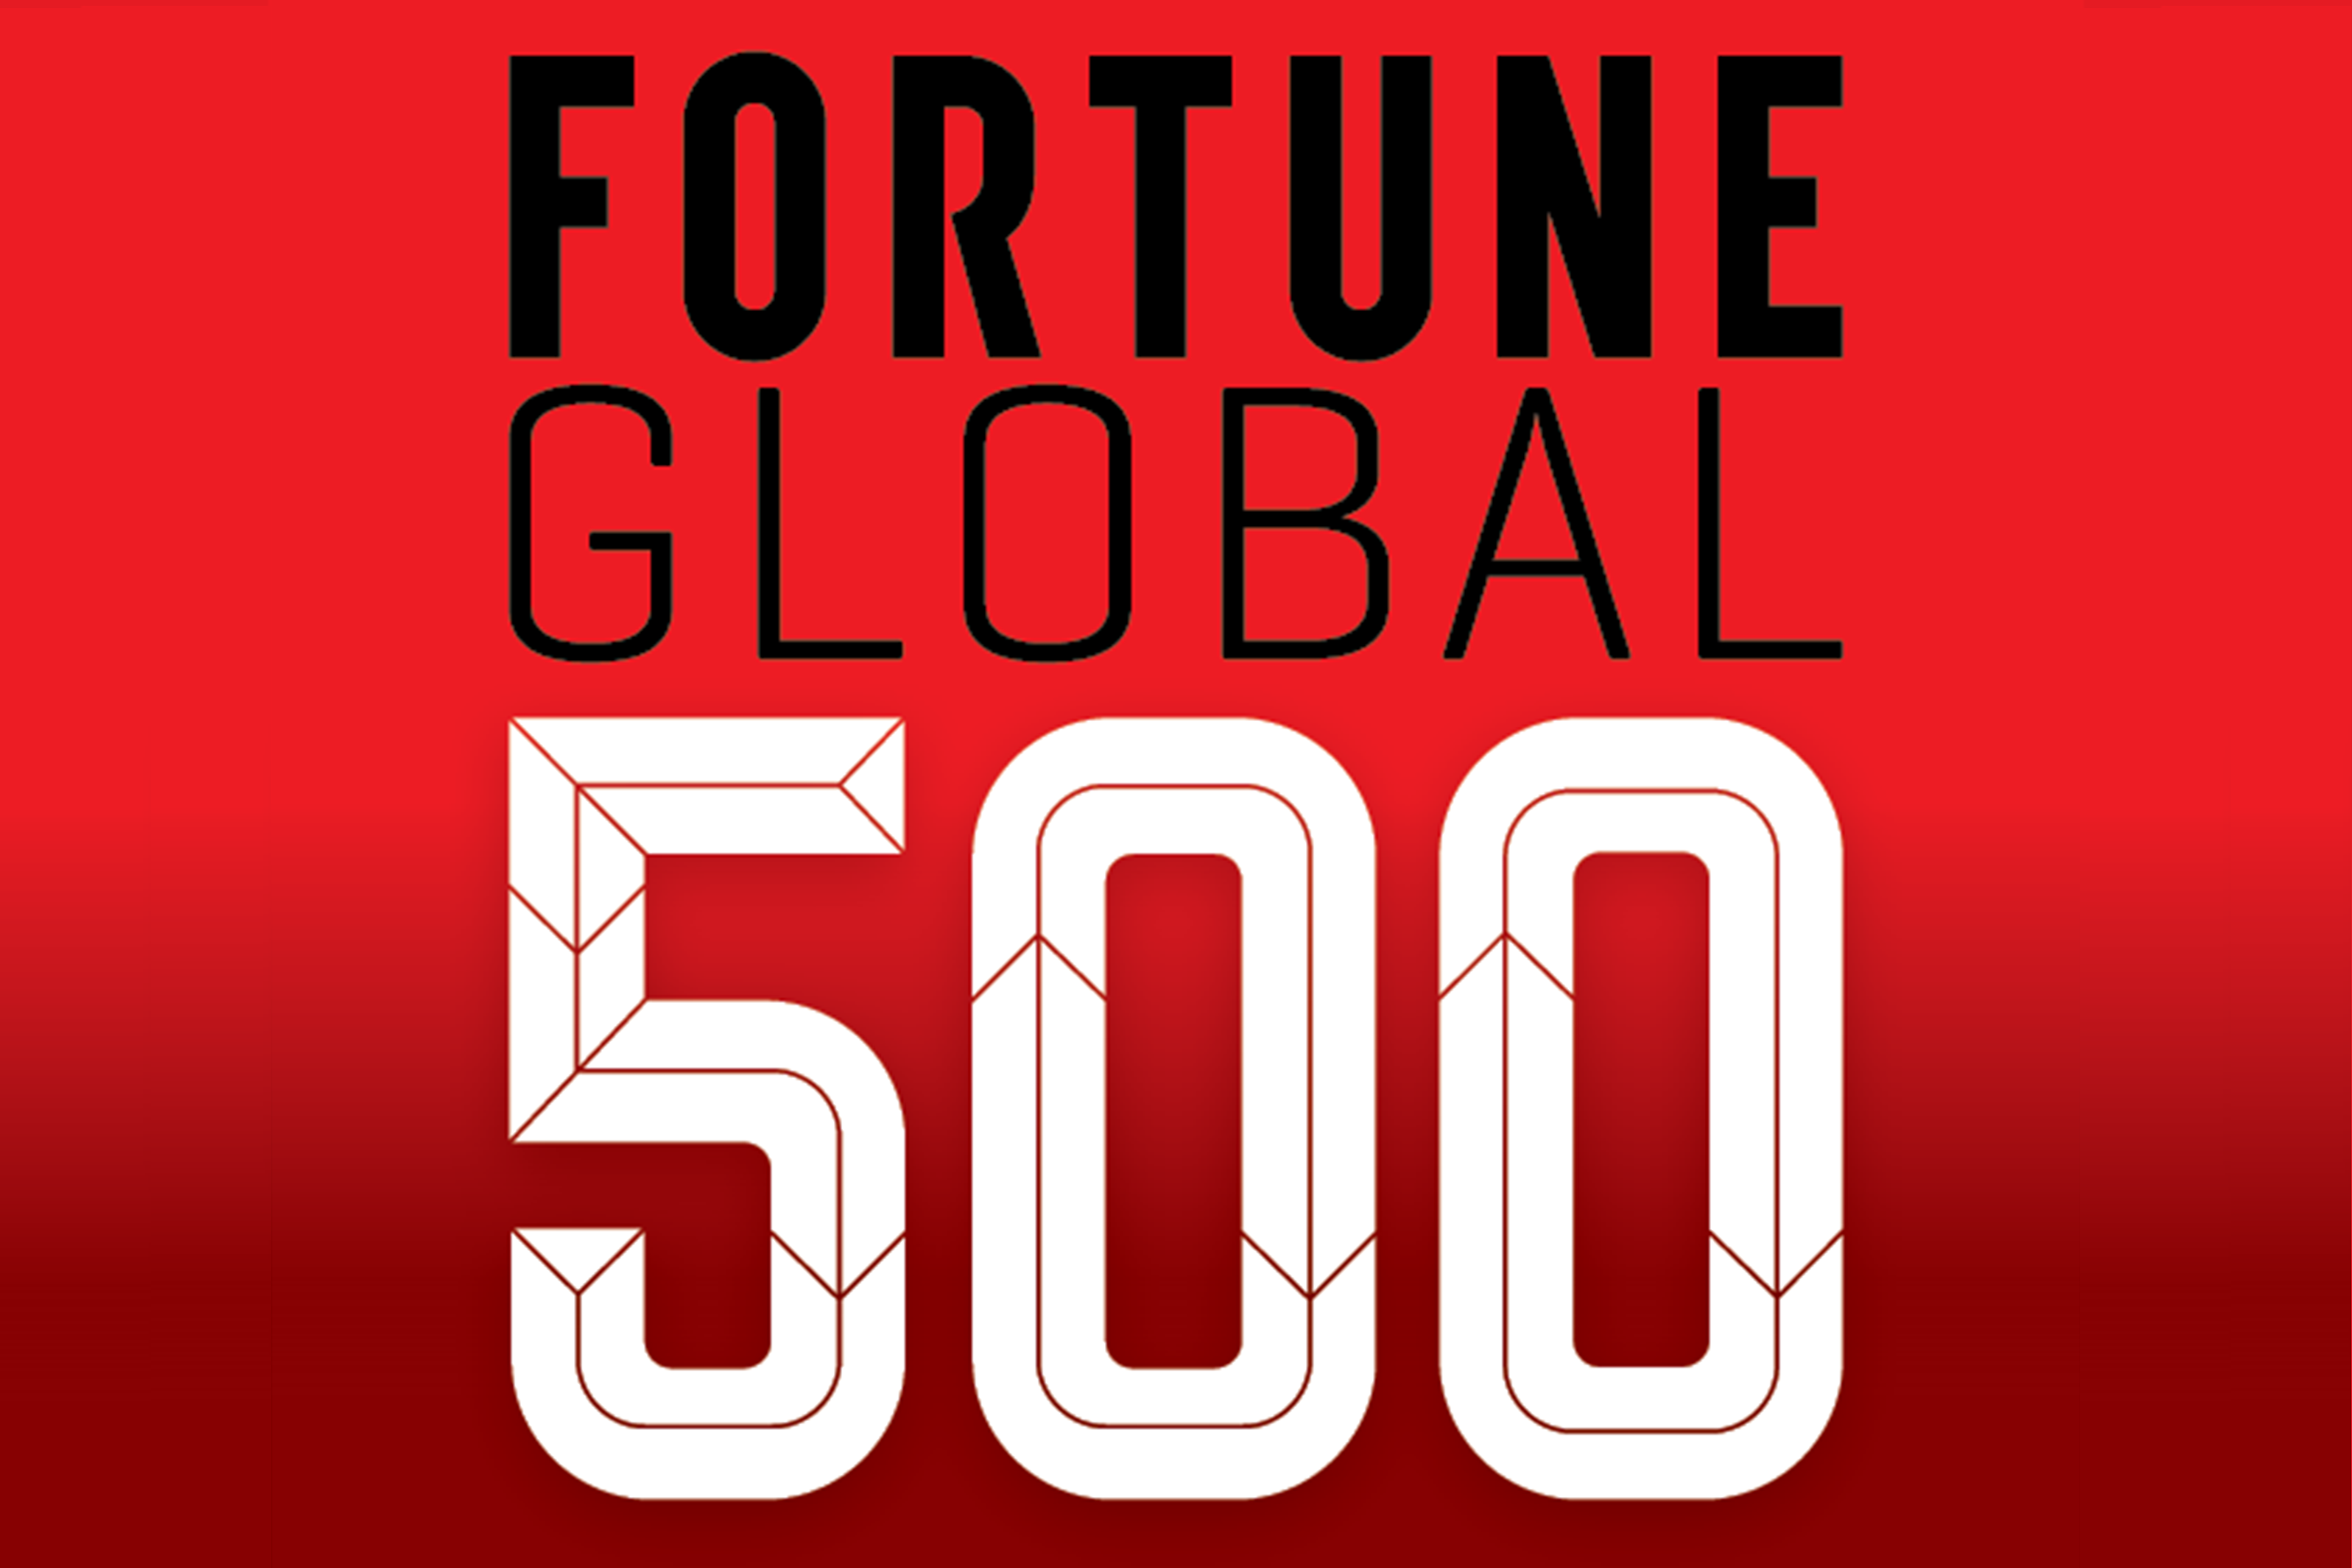 High Quality Links From Fortune 500 Companies